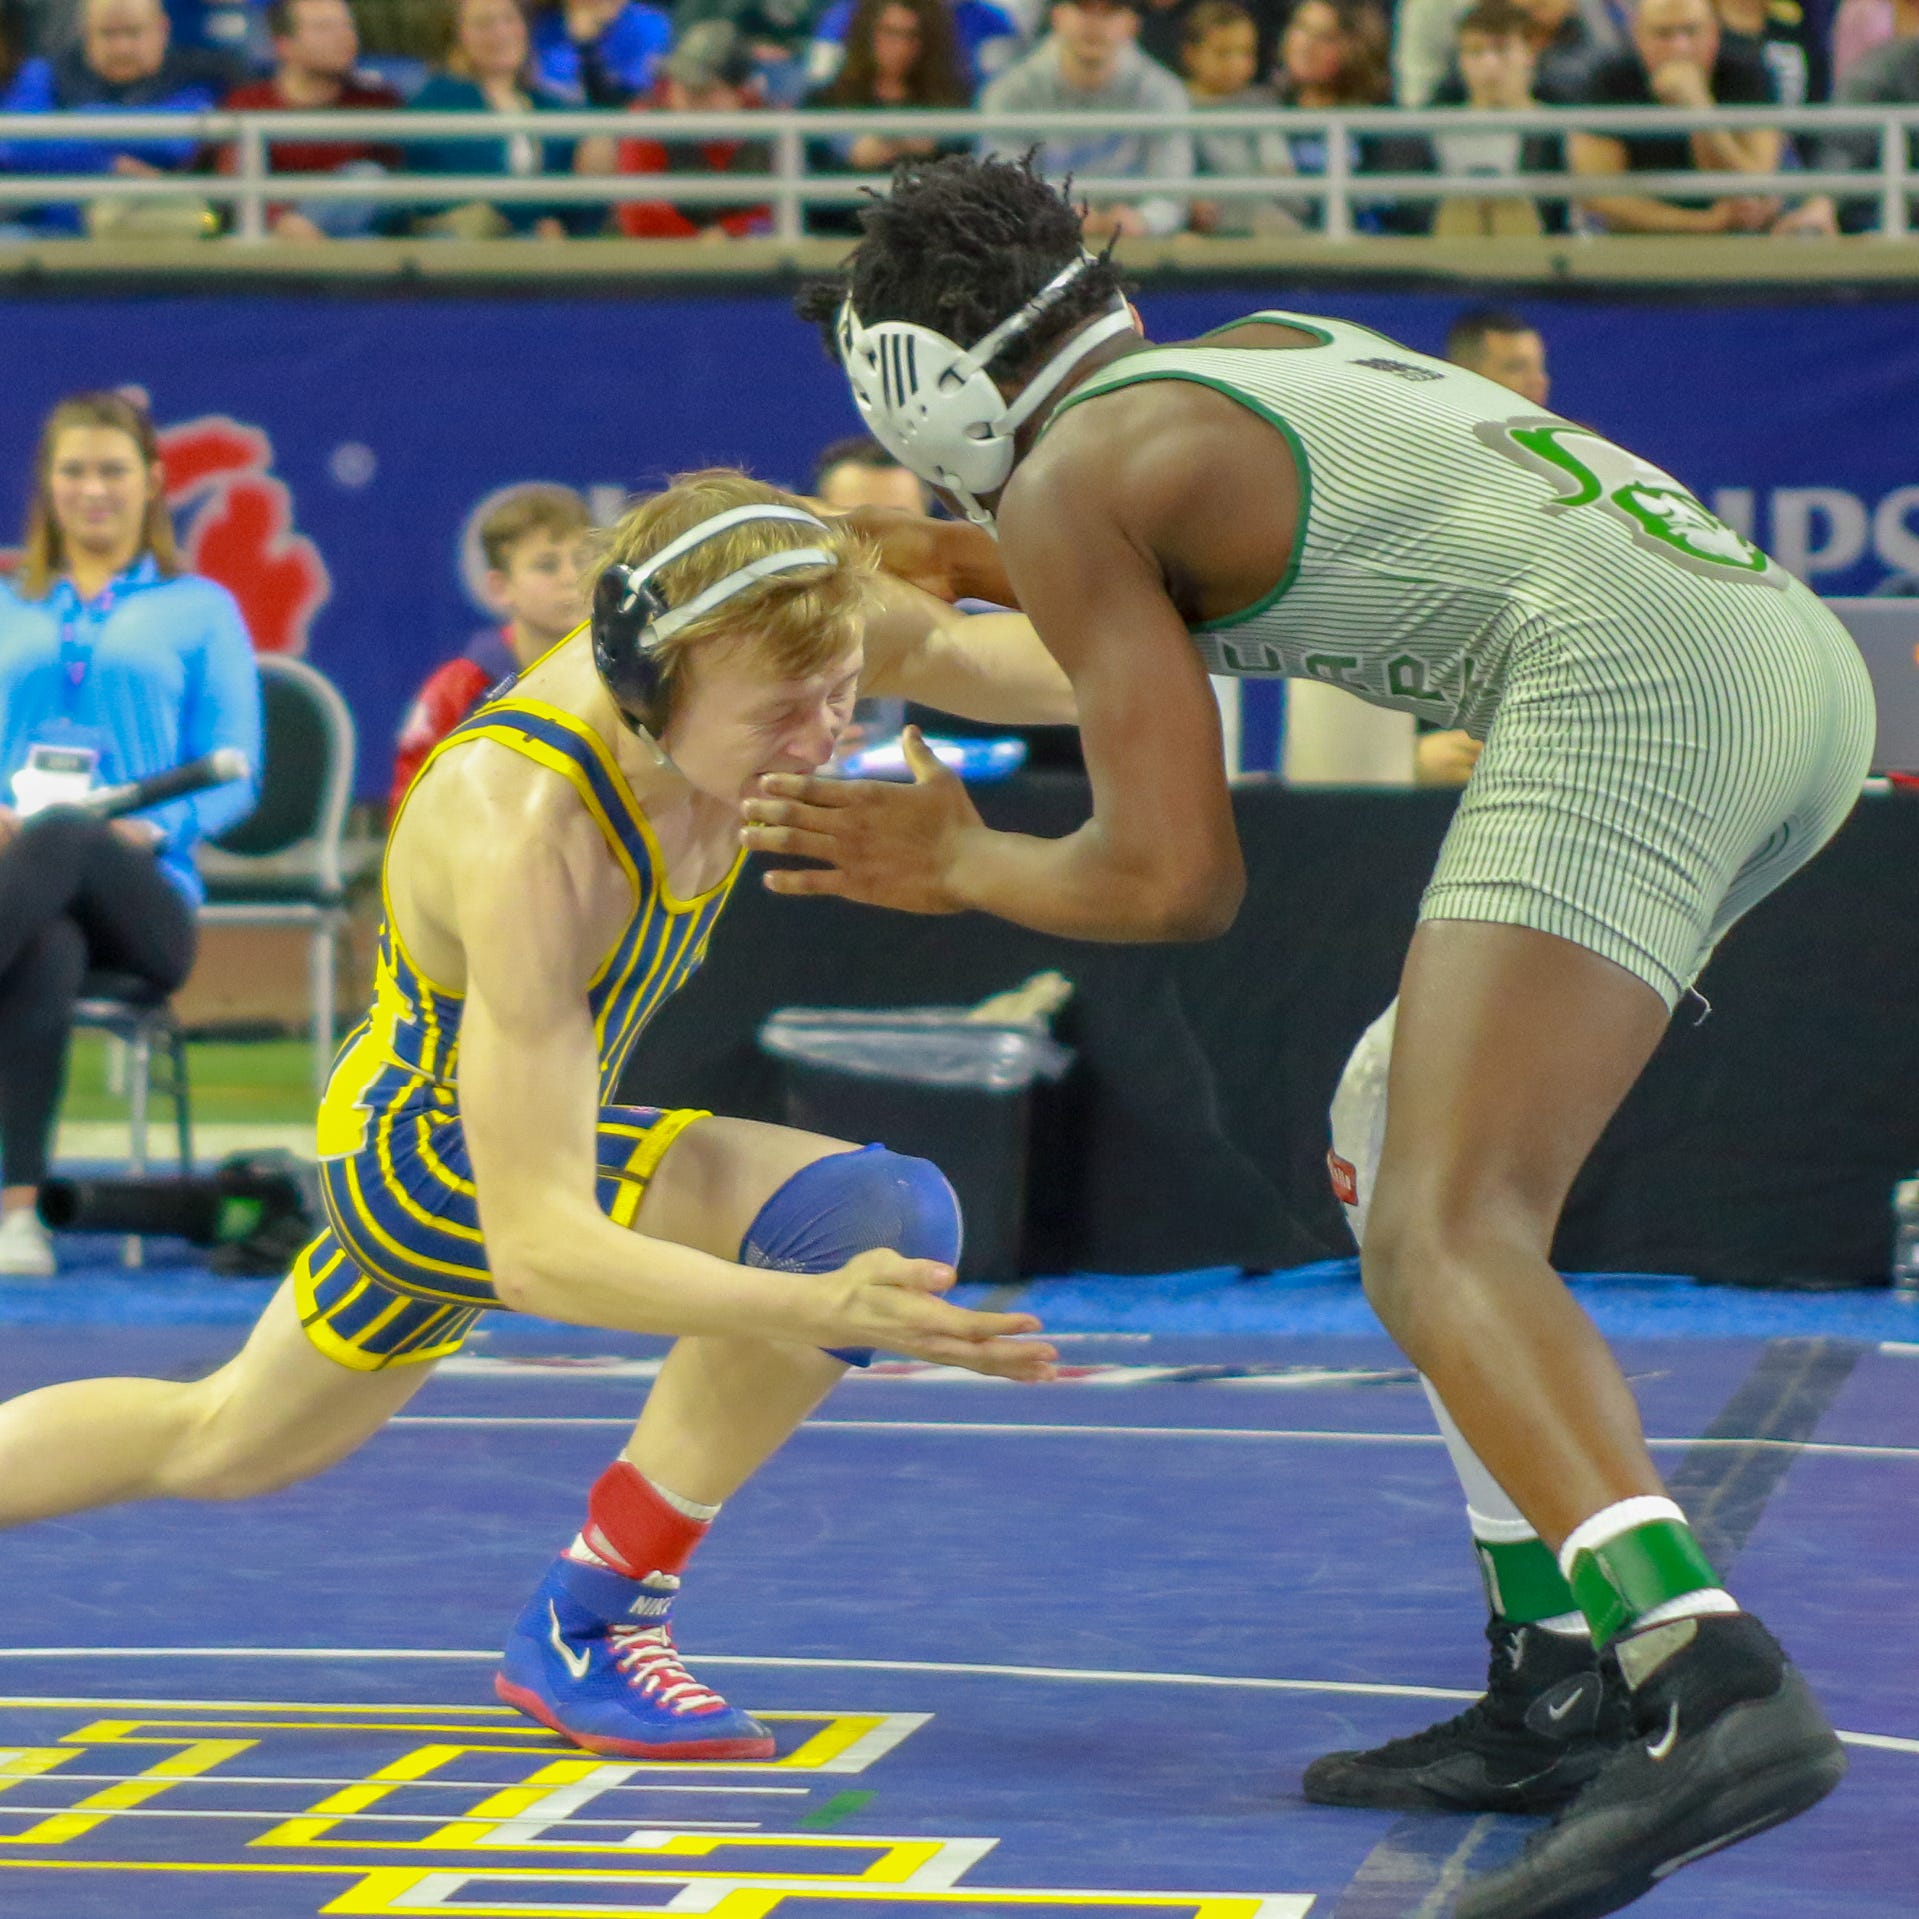 Indiana NAIA school mines Livingston County all-state wrestling talent